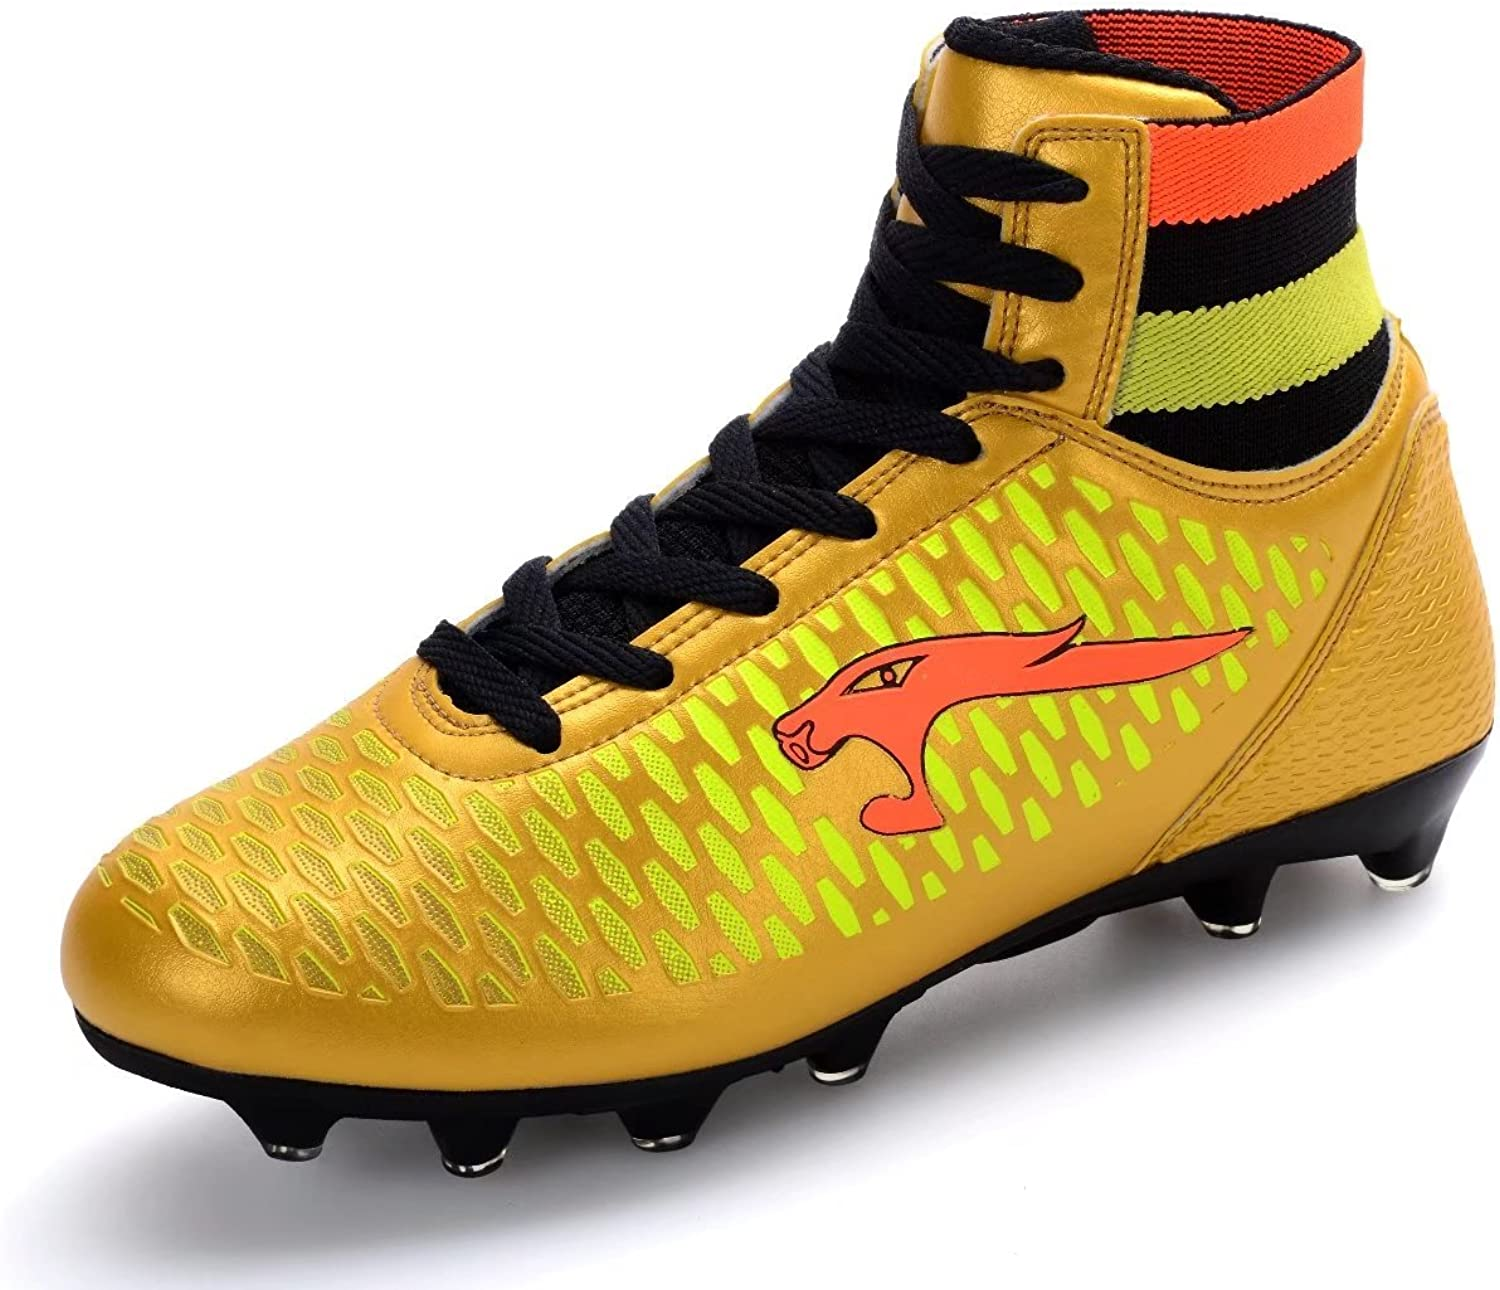 Men's American Football Rugby shoes AnkleHigh Breathable Mid Soccer shoes Boots for Boy